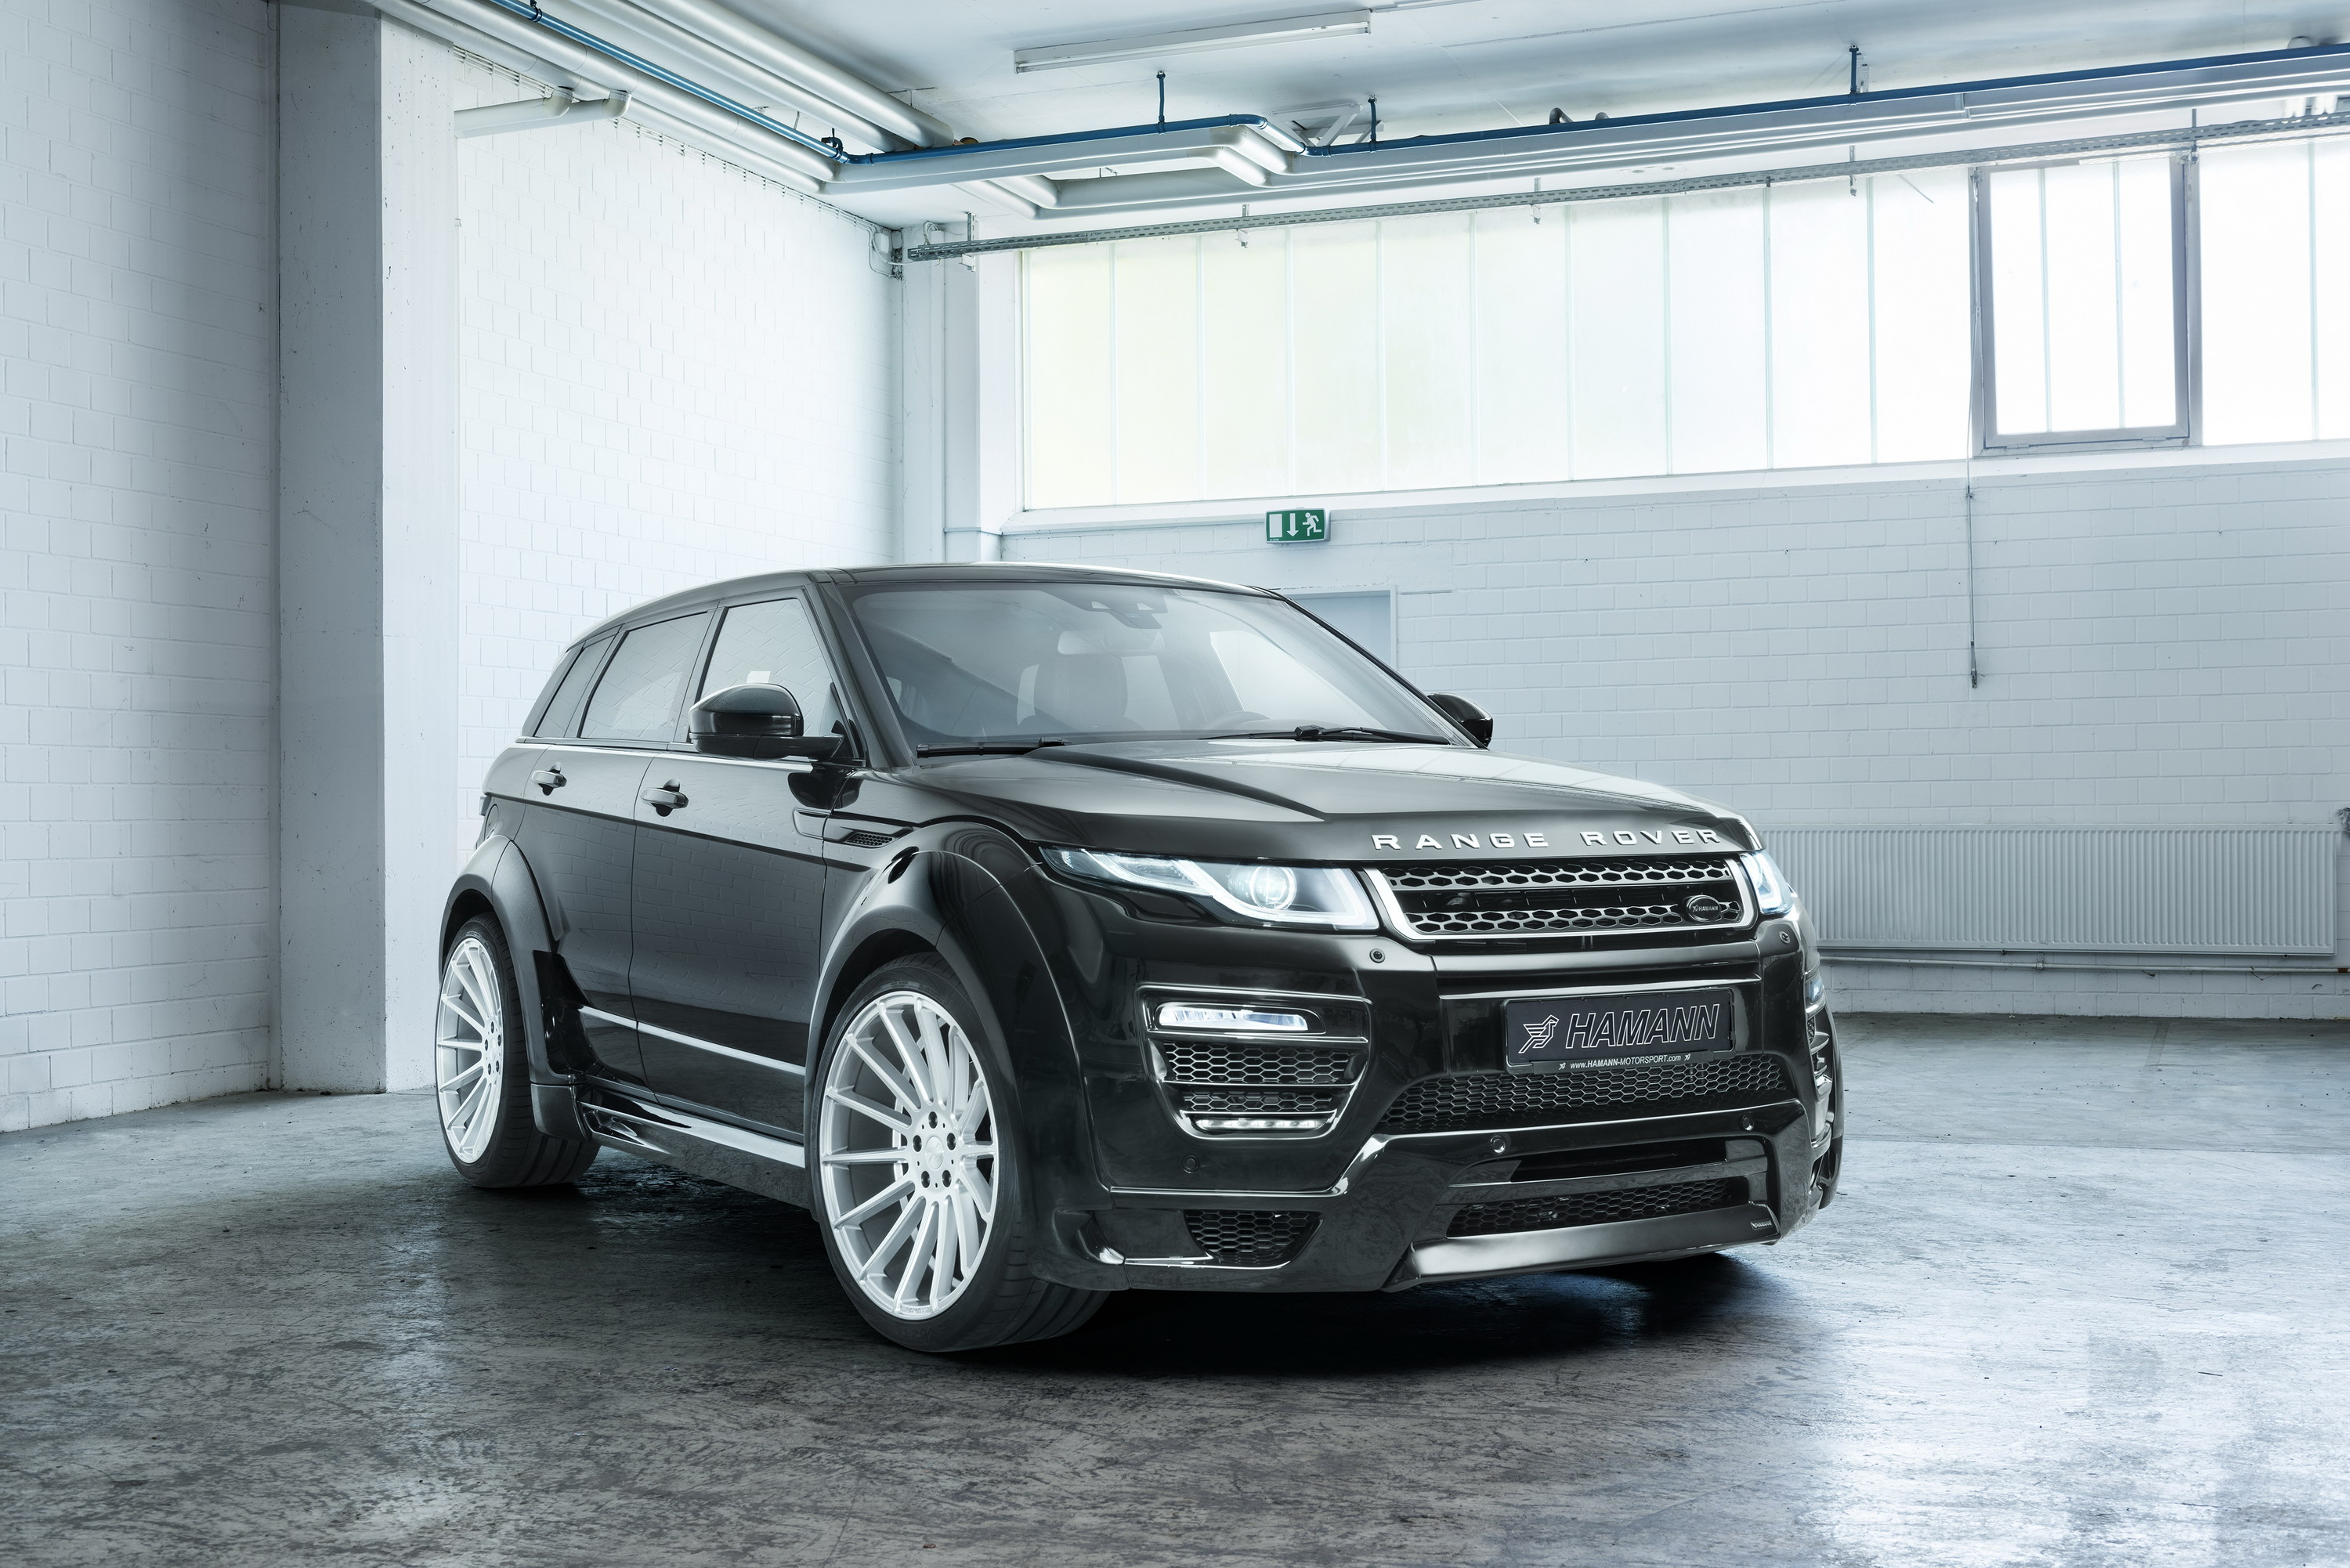 2016 Range Rover Evoque By Hamann Review Top Speed